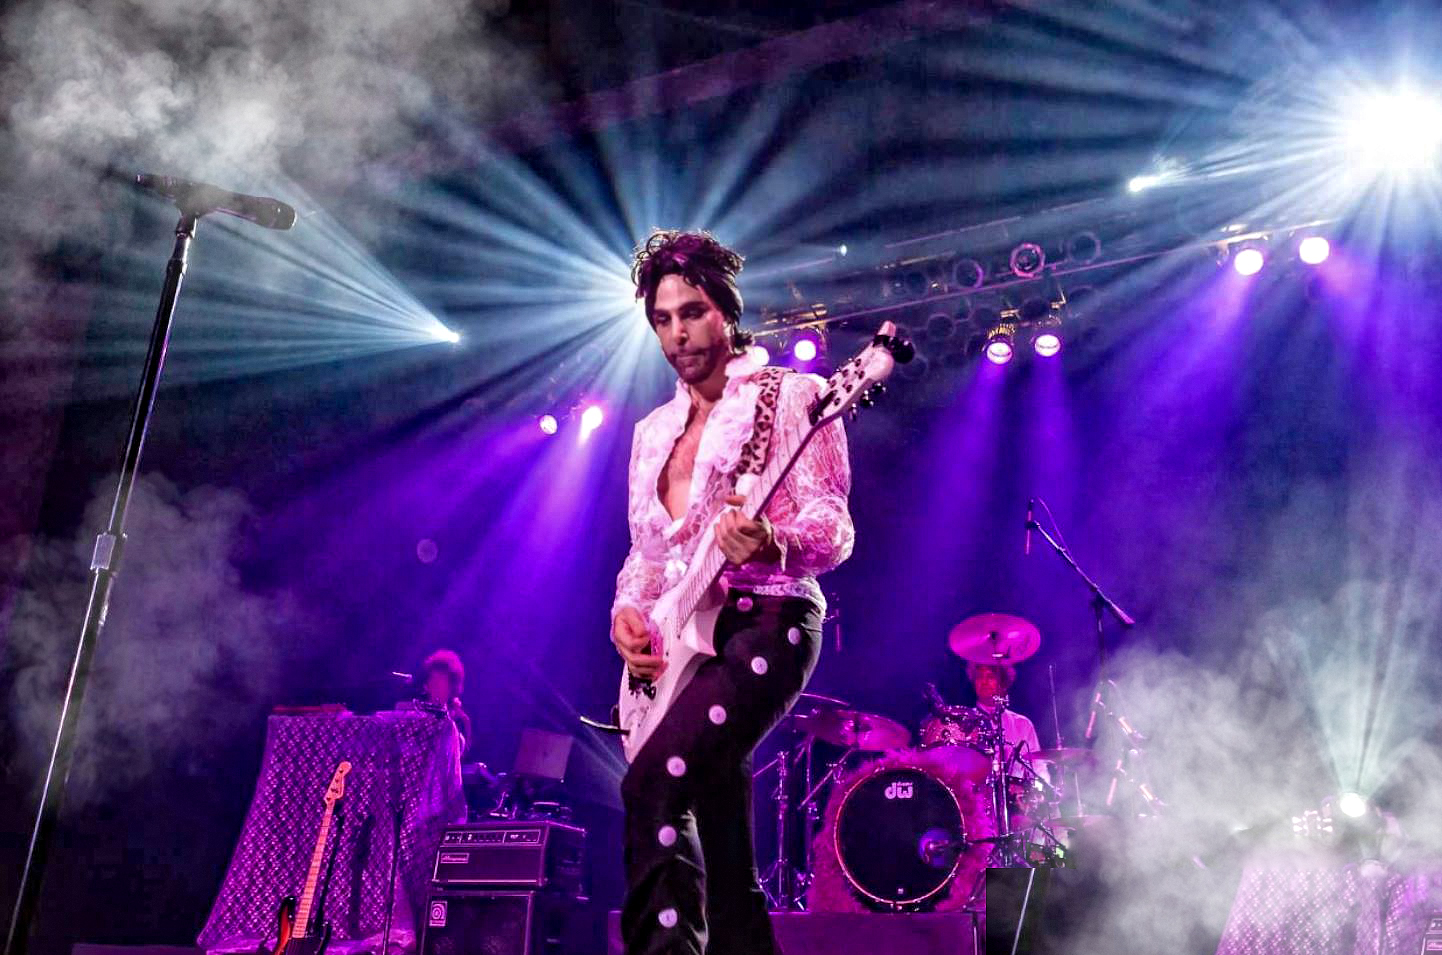 Amp 2021 Concert Series: The Purple Xperience